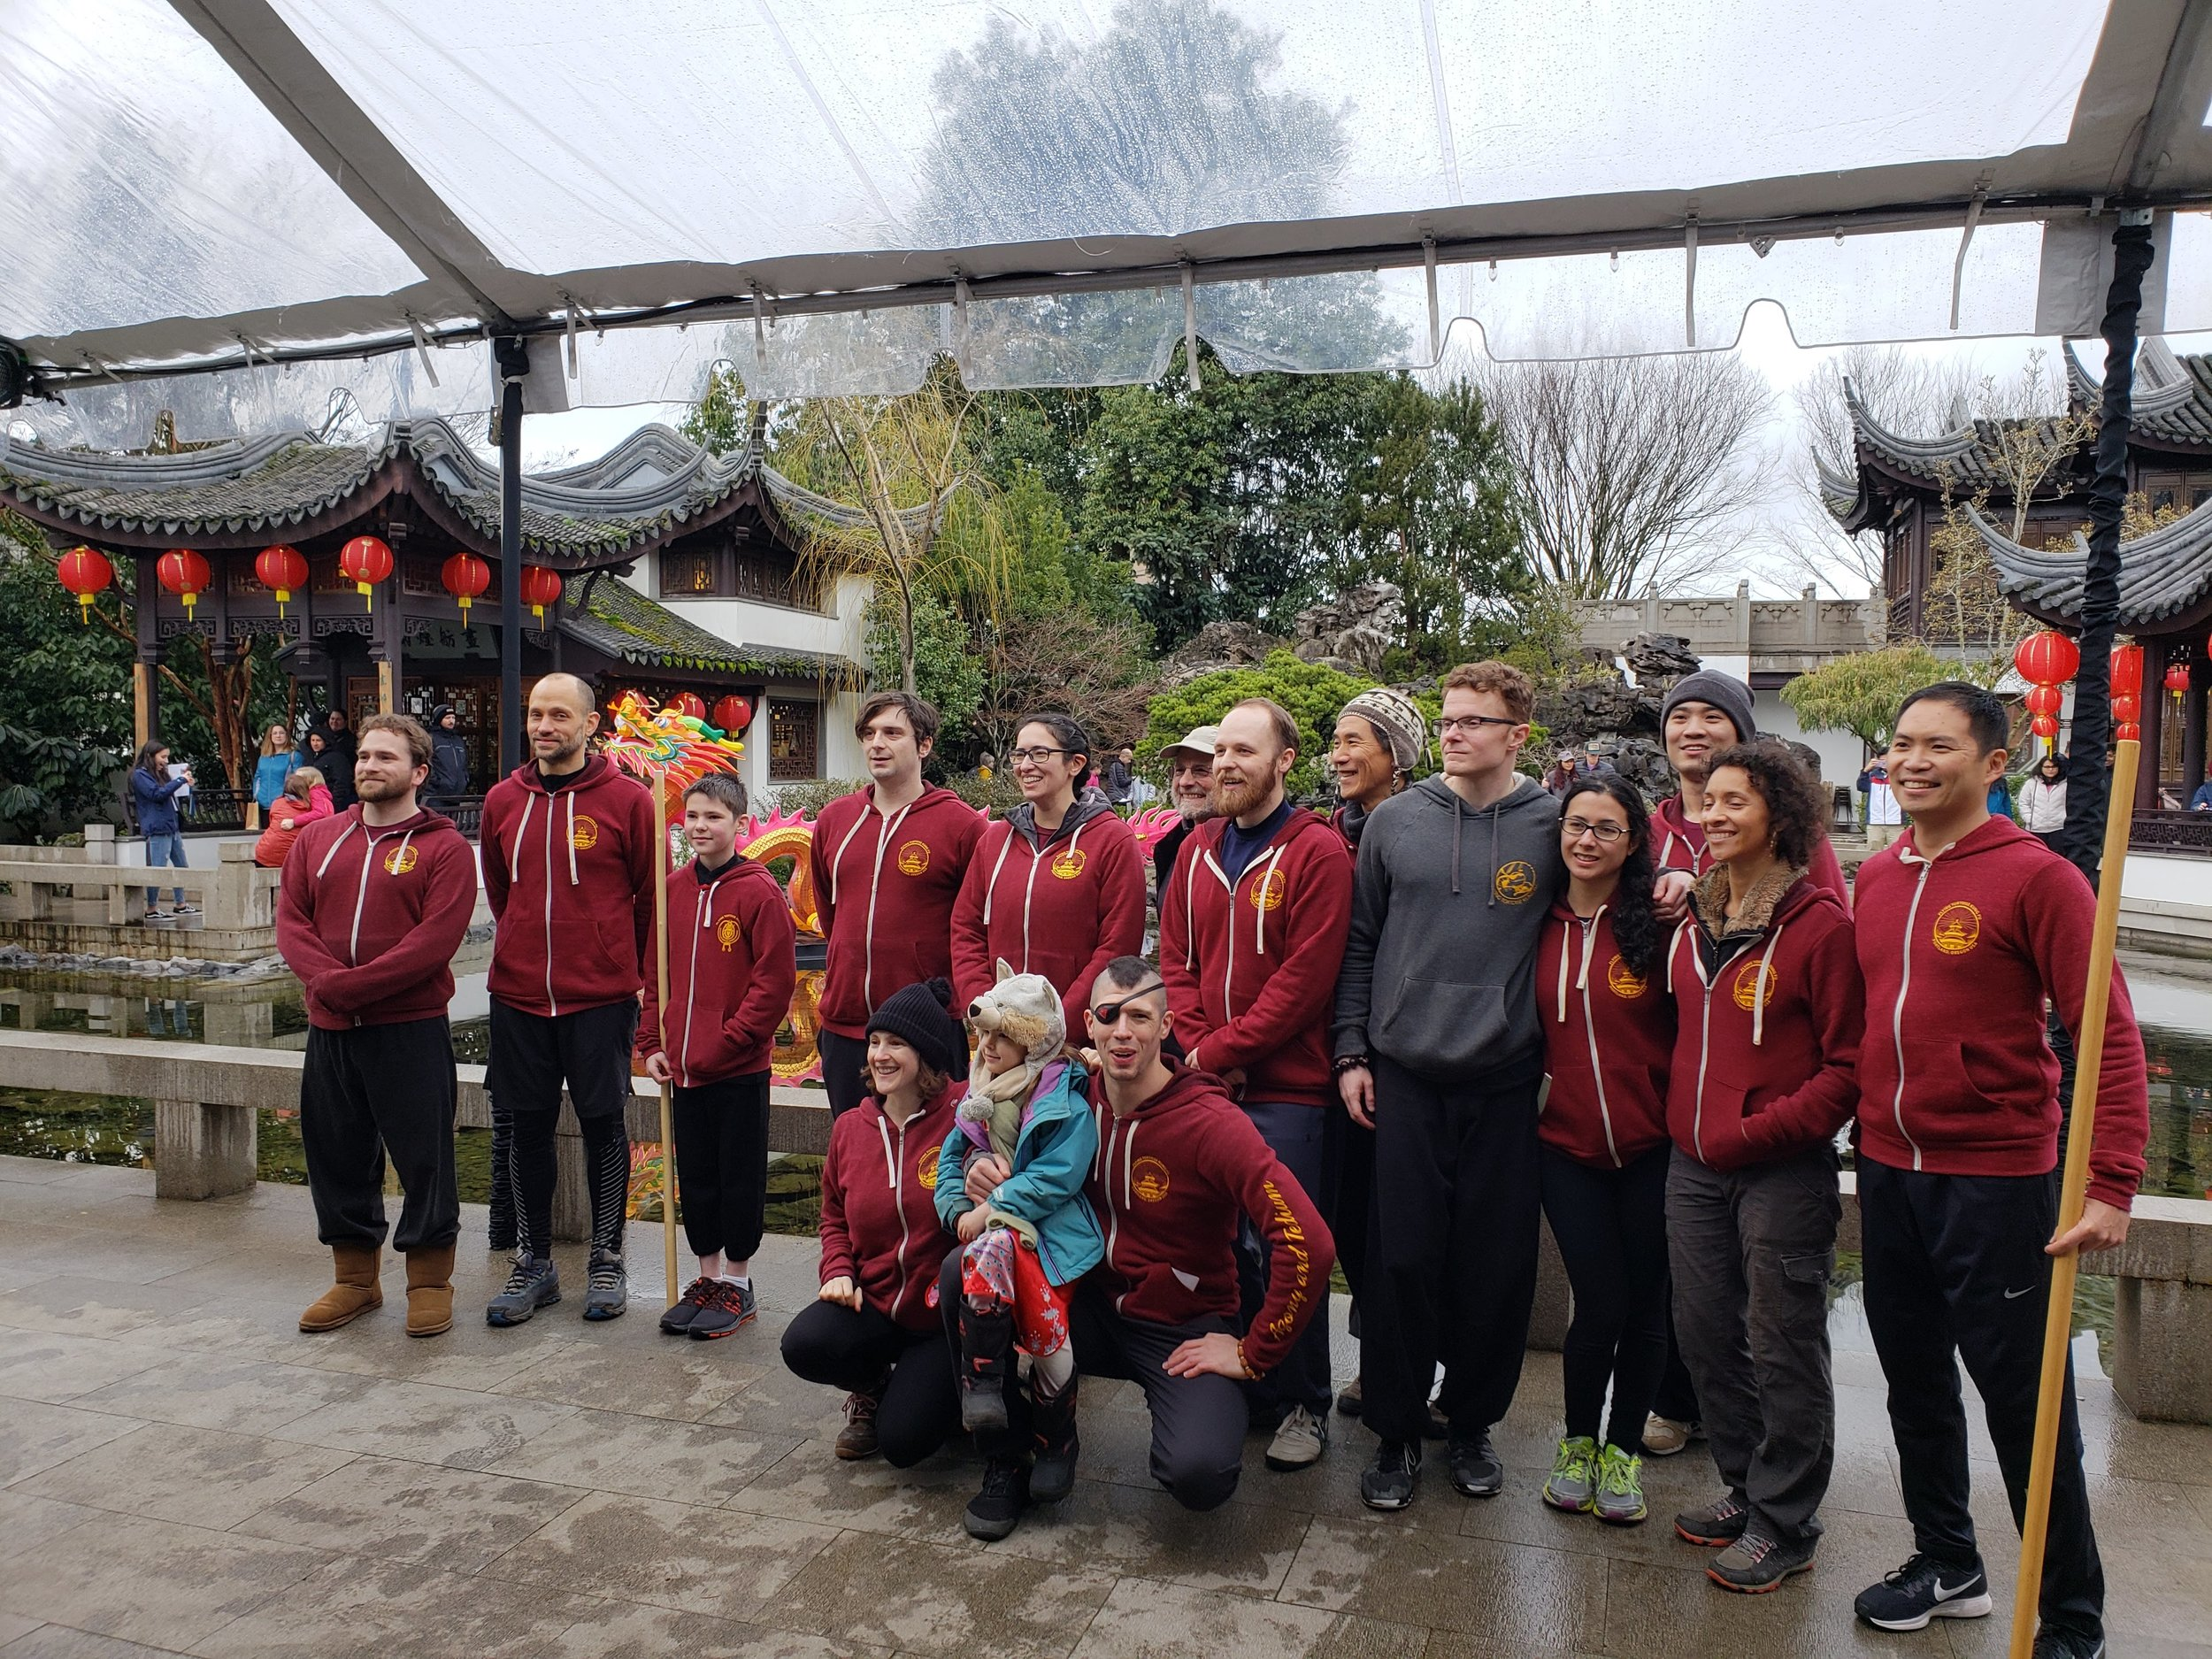 Our 3rd annual KungFu performance at the Lan Su Chinese Gardens